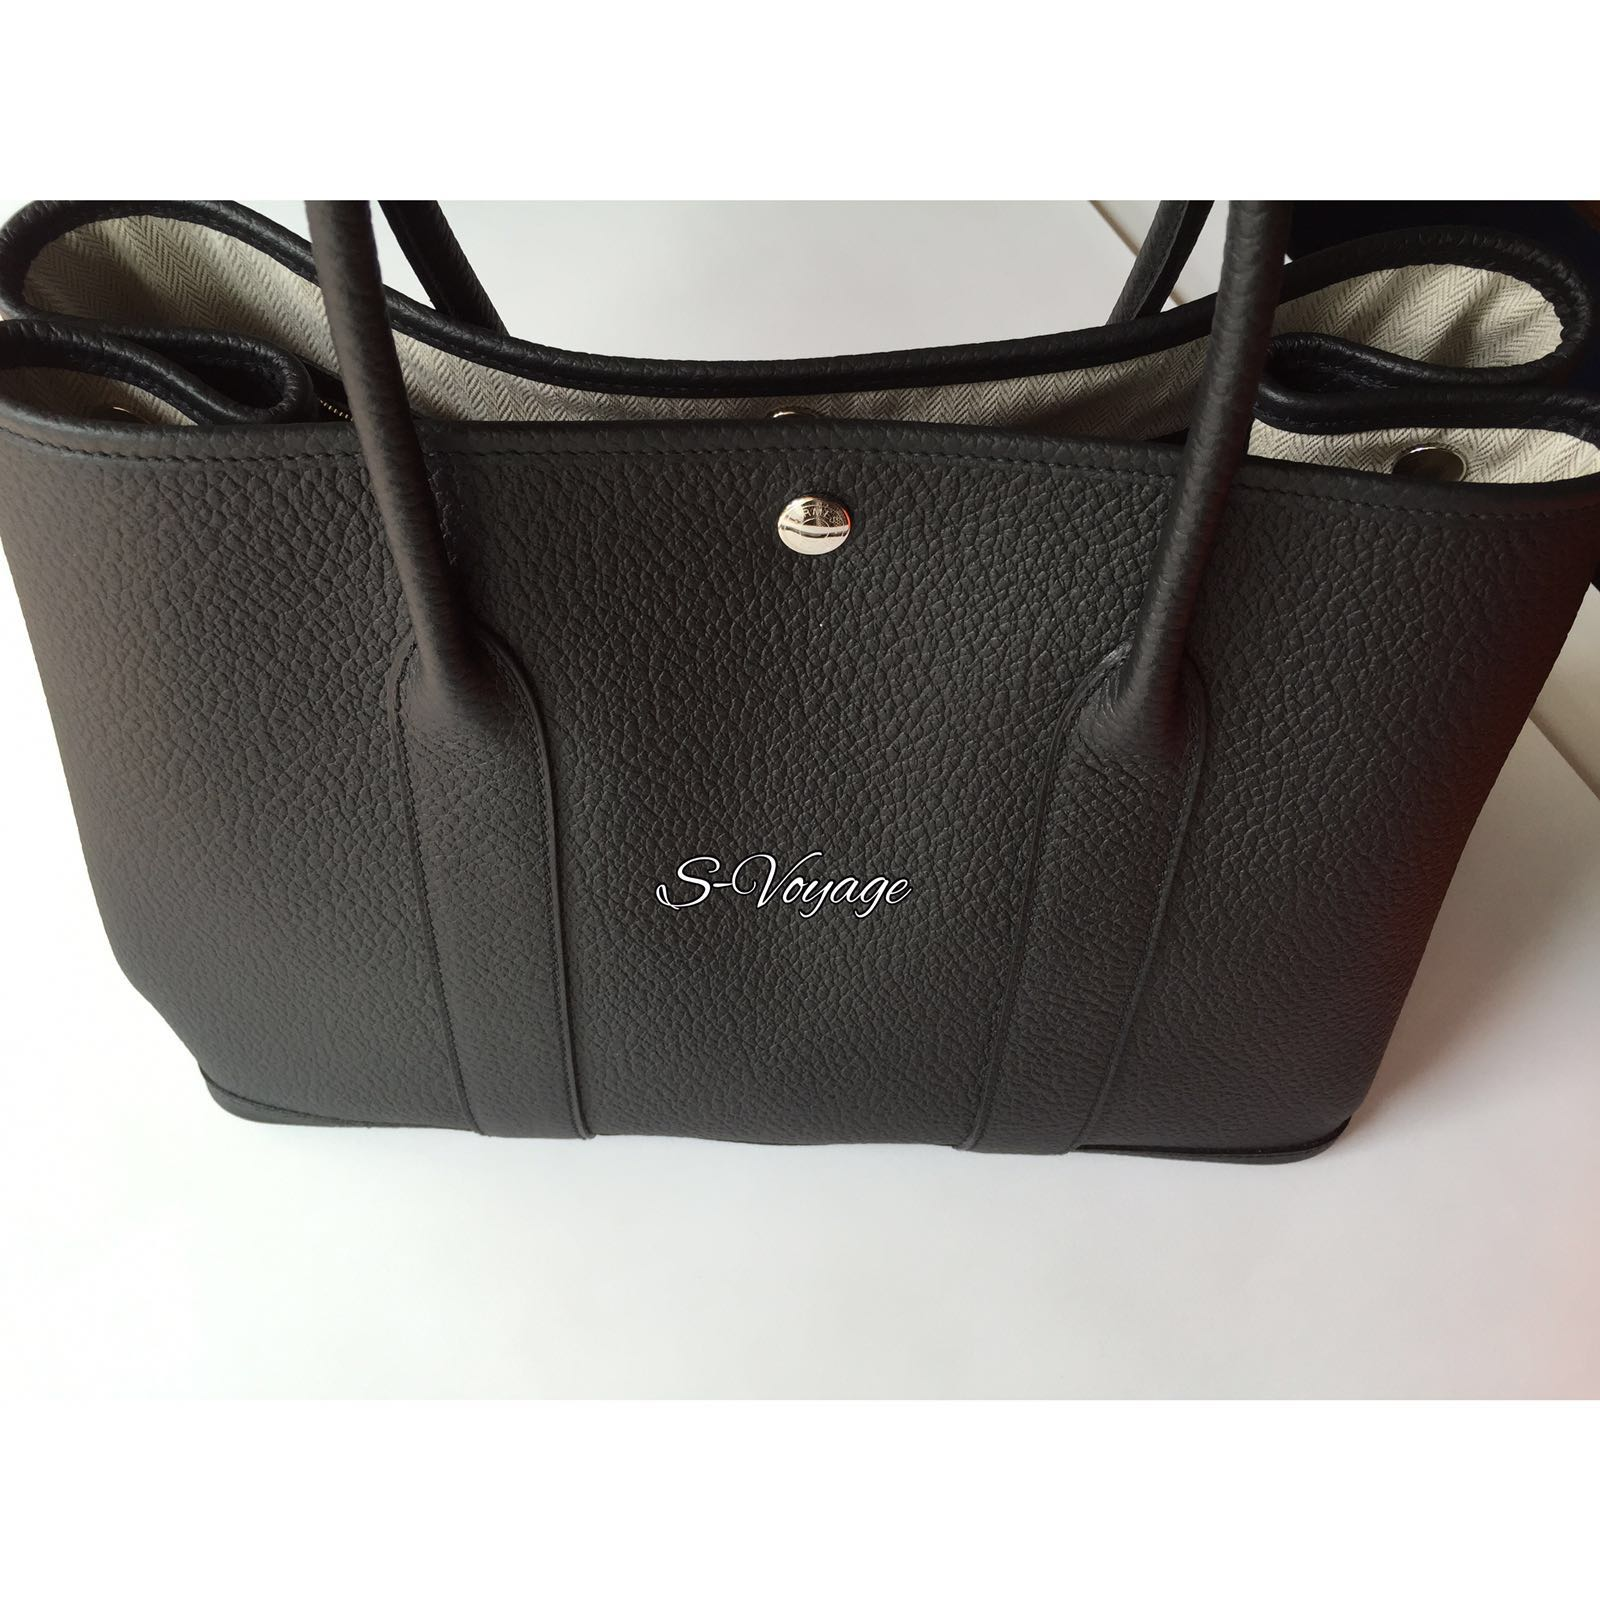 Brand New Hermes Garden Party Tote Bag Size 36cm in Black and Negonda  Leather Stamp T. 6bc2ef96cd